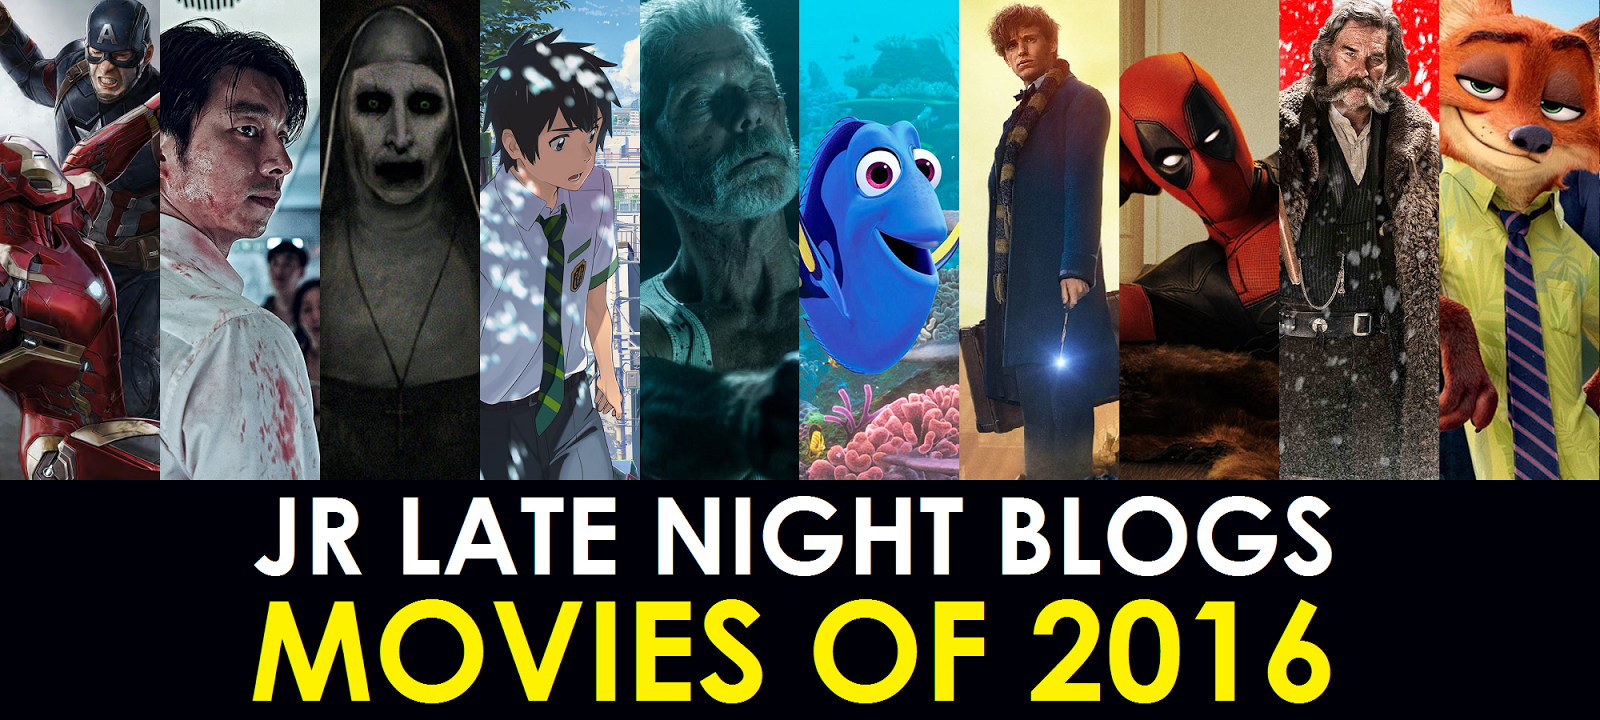 JR's Movies of the Year 2016